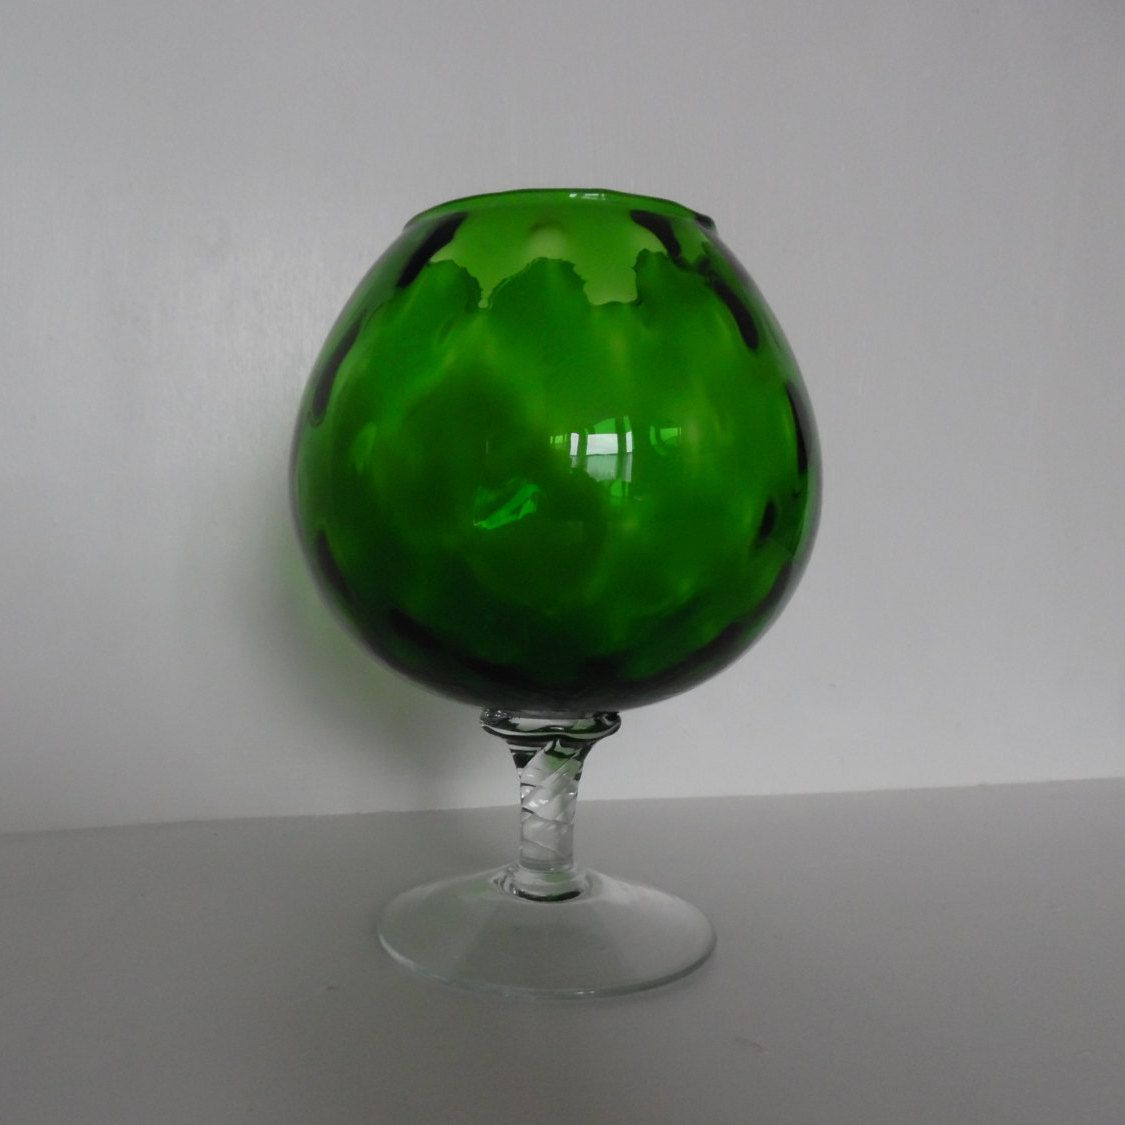 Large green baloon glass vase giant brandy snifter optic large green baloon glass vase giant brandy snifter optic glass mid century reviewsmspy